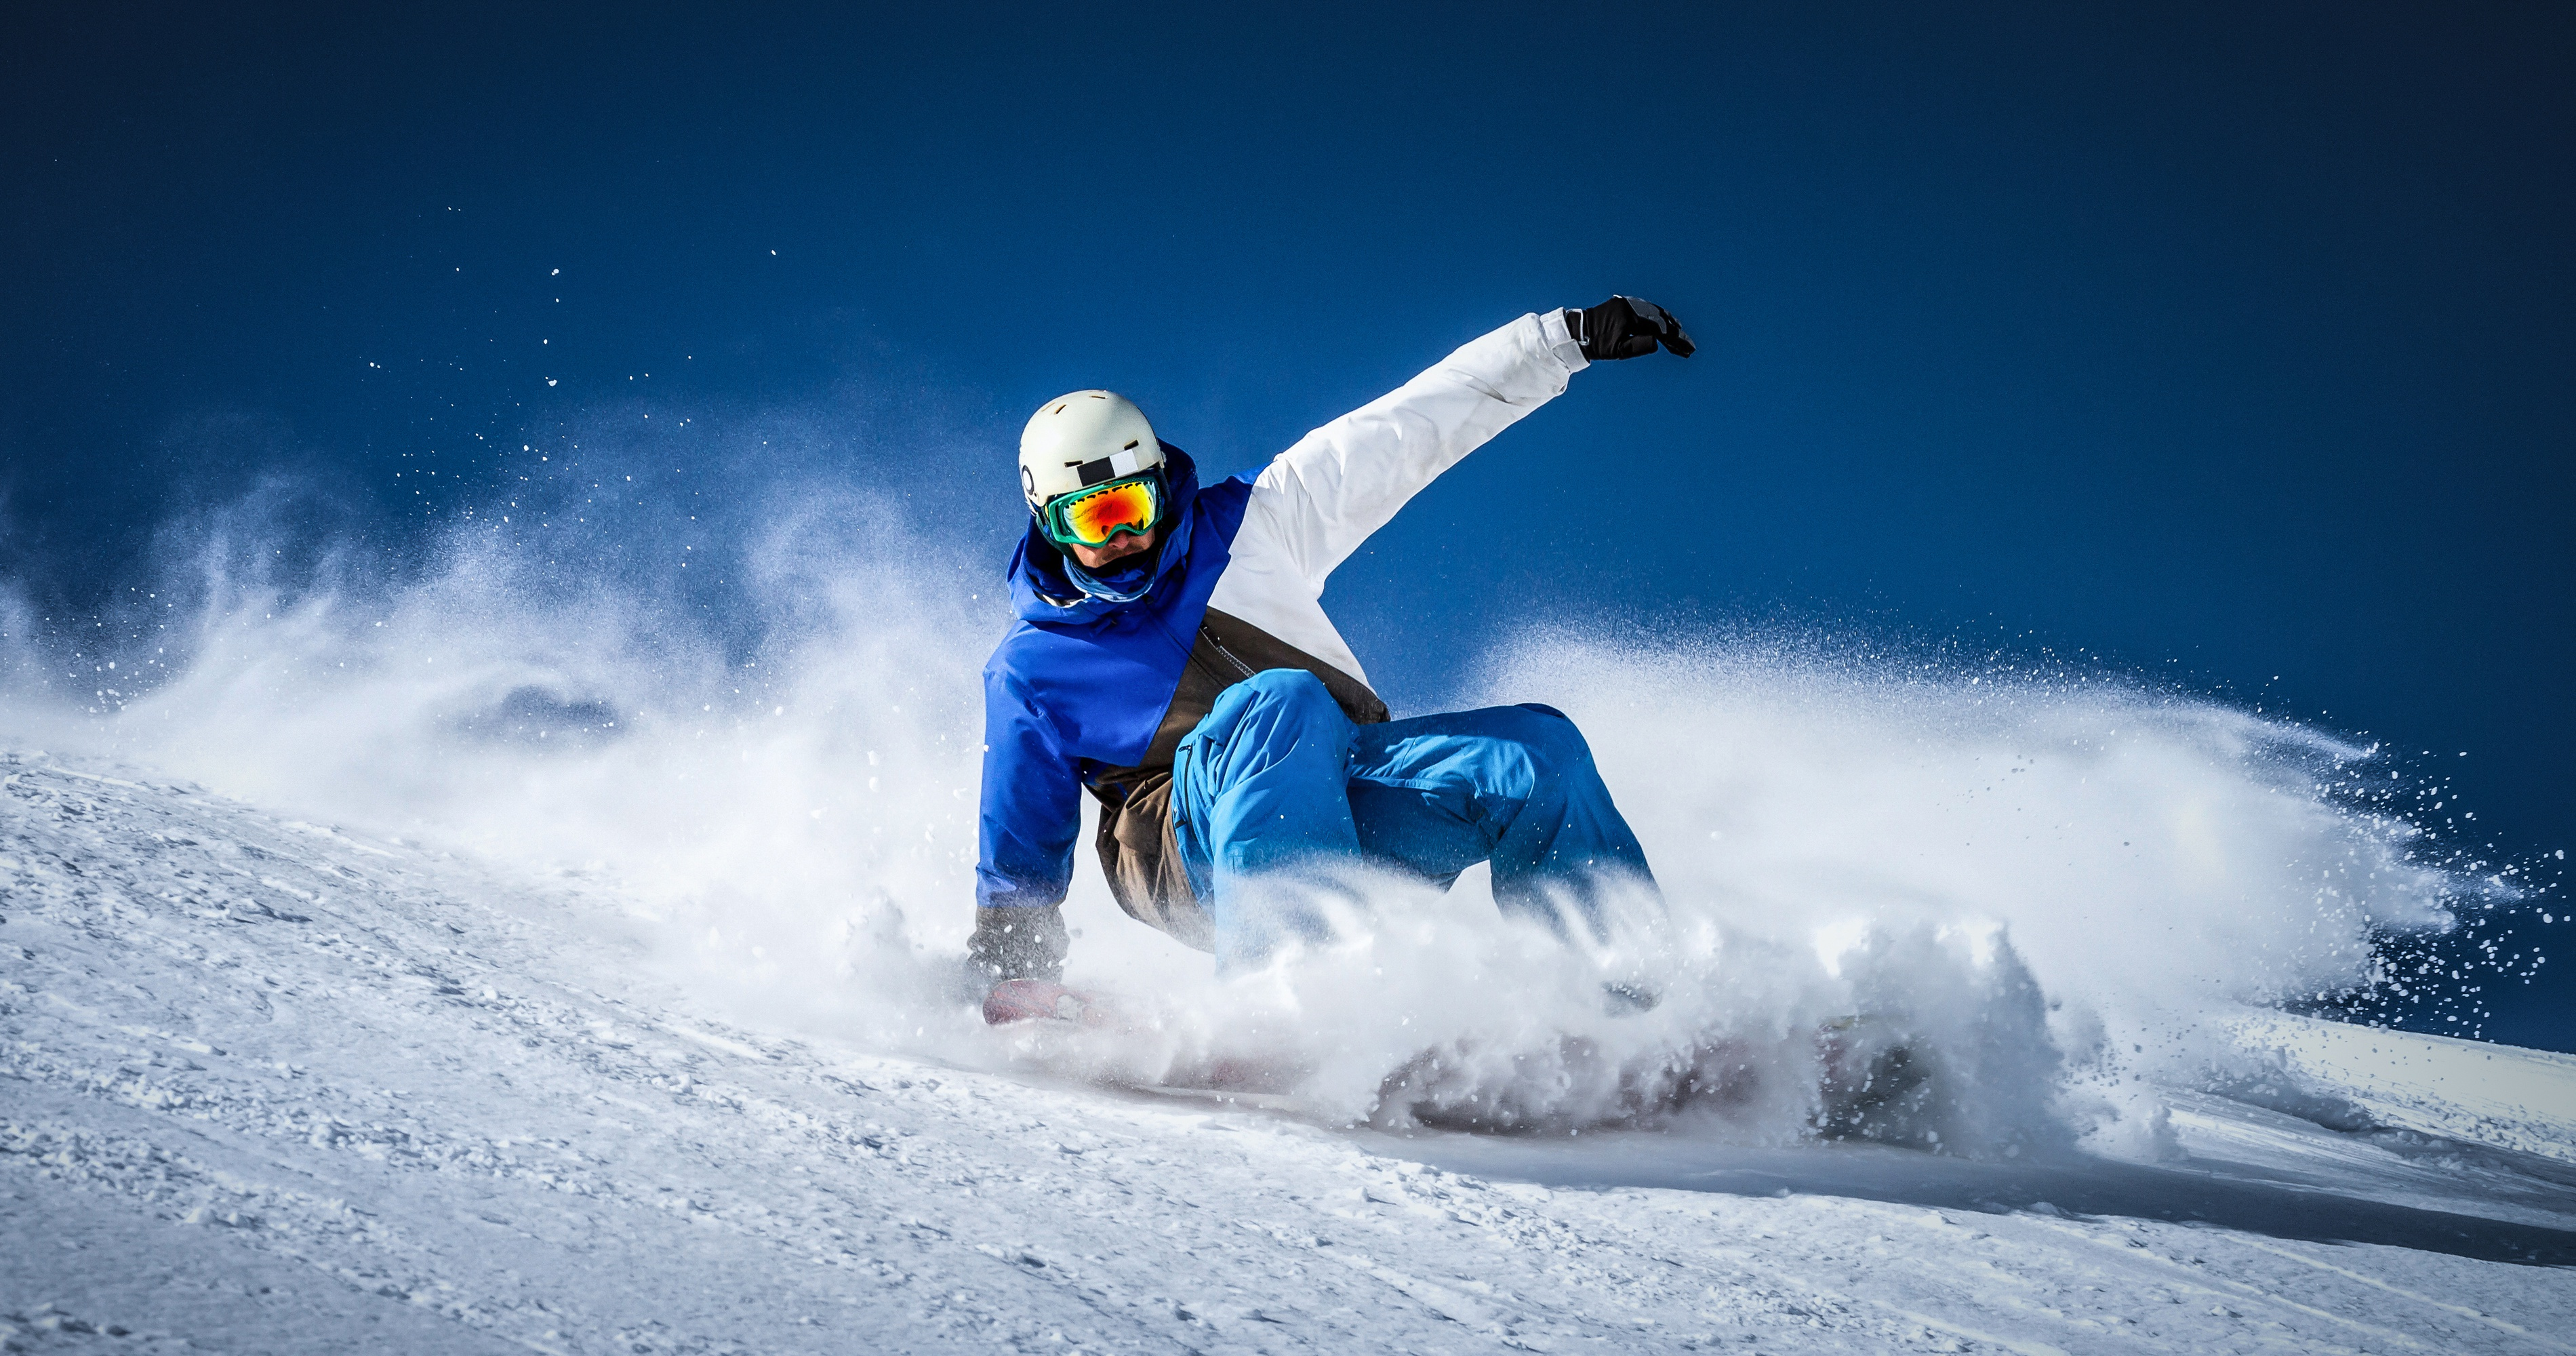 Sport Ultra Hd Desktop Background Wallpaper For: Snowboarding, HD Sports, 4k Wallpapers, Images